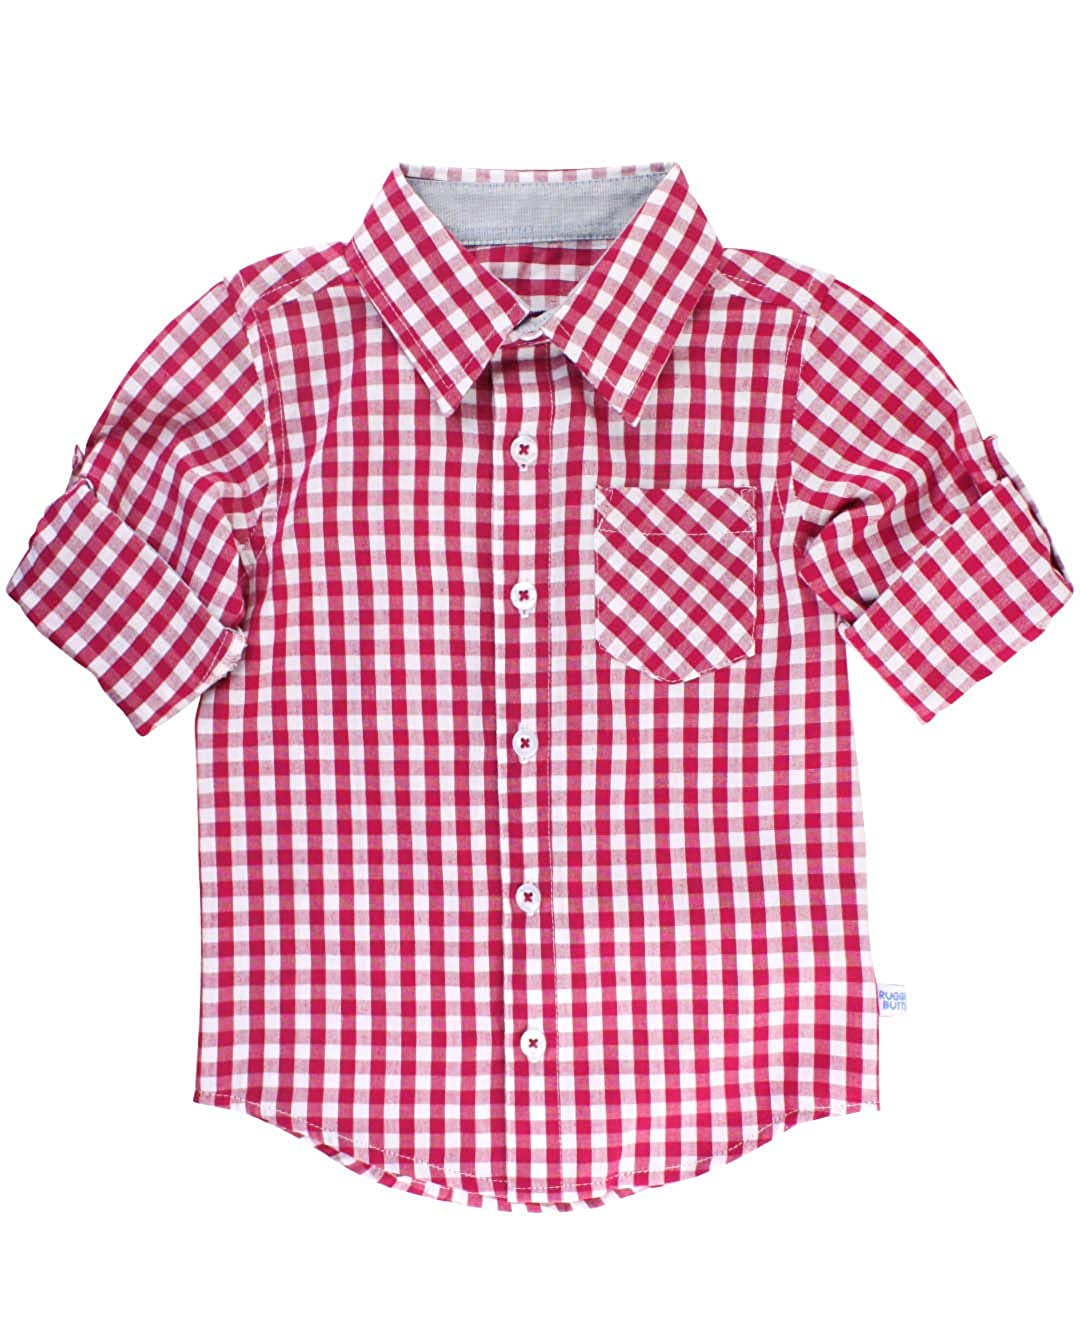 RuggedButts Baby//Toddler Boys Gingham Plaid Long Sleeve Button Down Shirt with Button Tabs